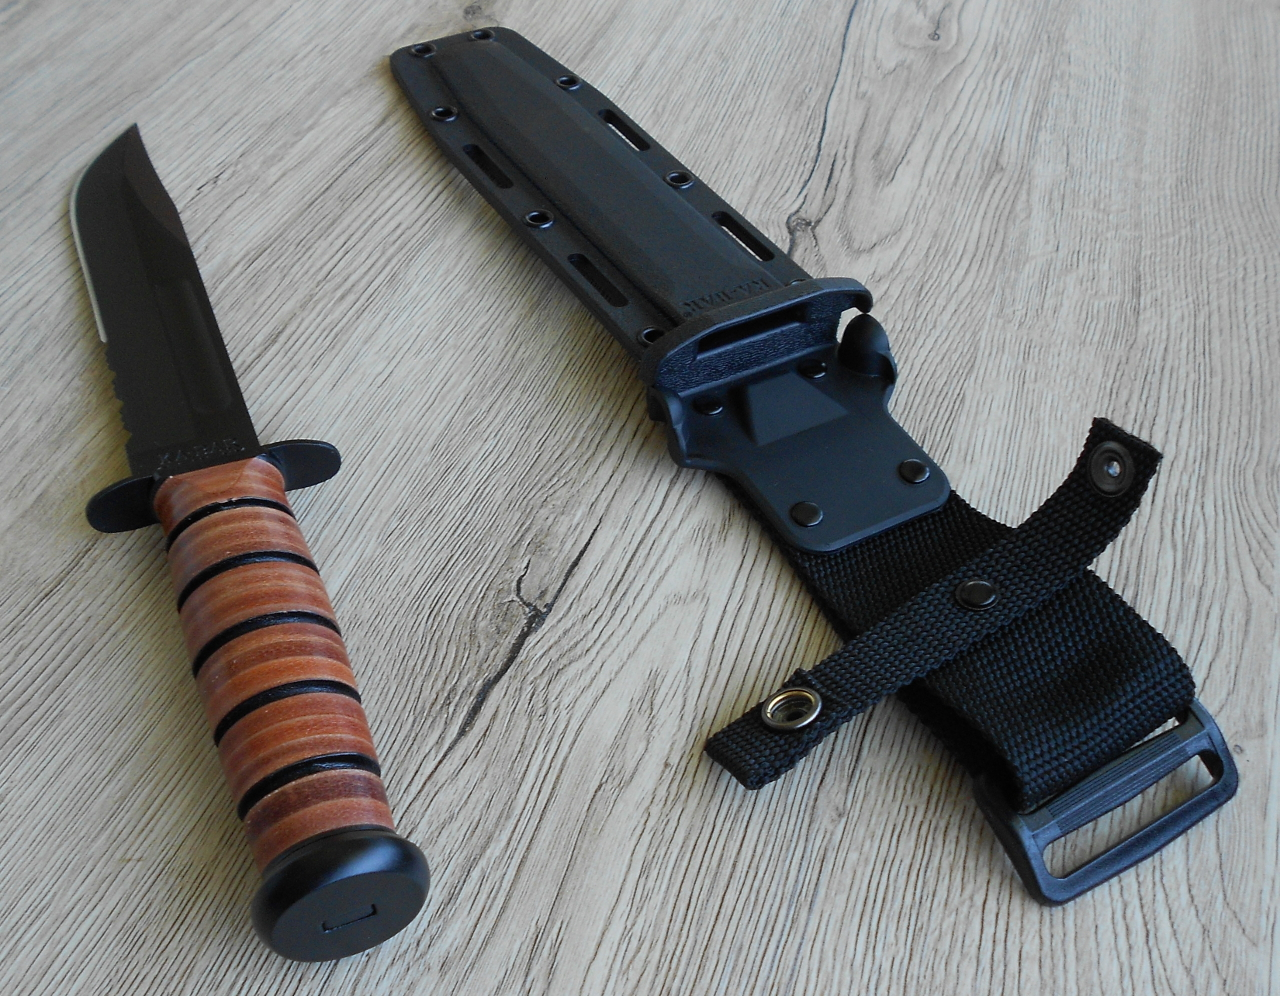 The plastic sheath for the USMC Ka-Bar allows more wearing options for the knife including the ability to wear it for either left or right hand use. The hand-guard clips into the retainers at the sheath mouth holding the knife positively in place.